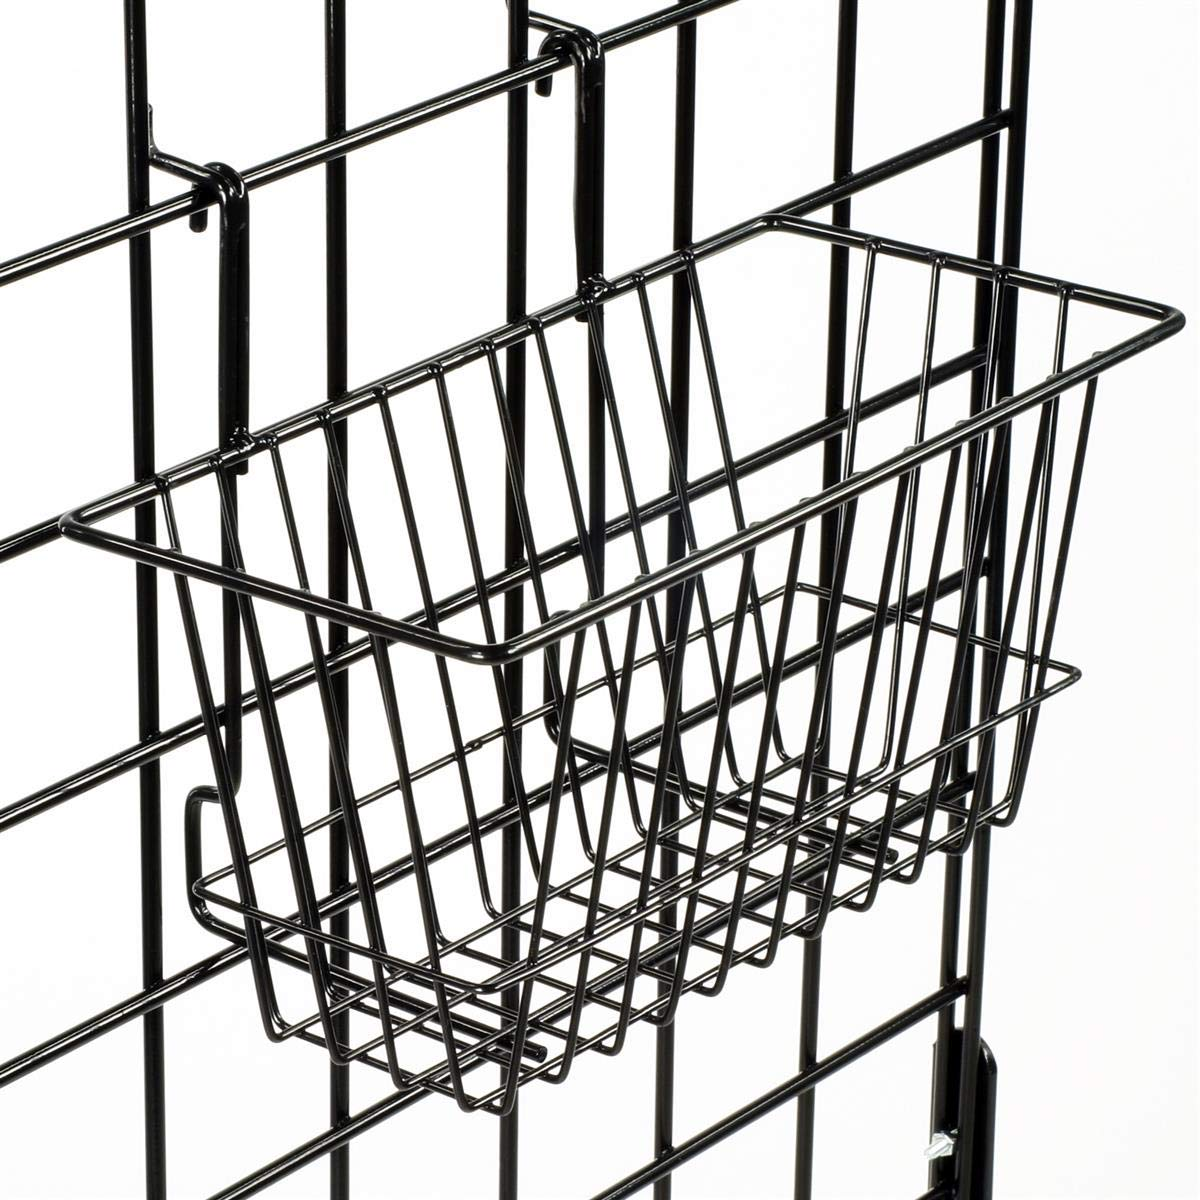 Only Hangers Small Wire Storage Baskets for Gridwall, Slatwall and Pegboard - Black Finish - Dimensions: 12'' x 6'' x 6'' Deep - Economically Sold in a Set of 6 Baskets by Only Hangers (Image #4)